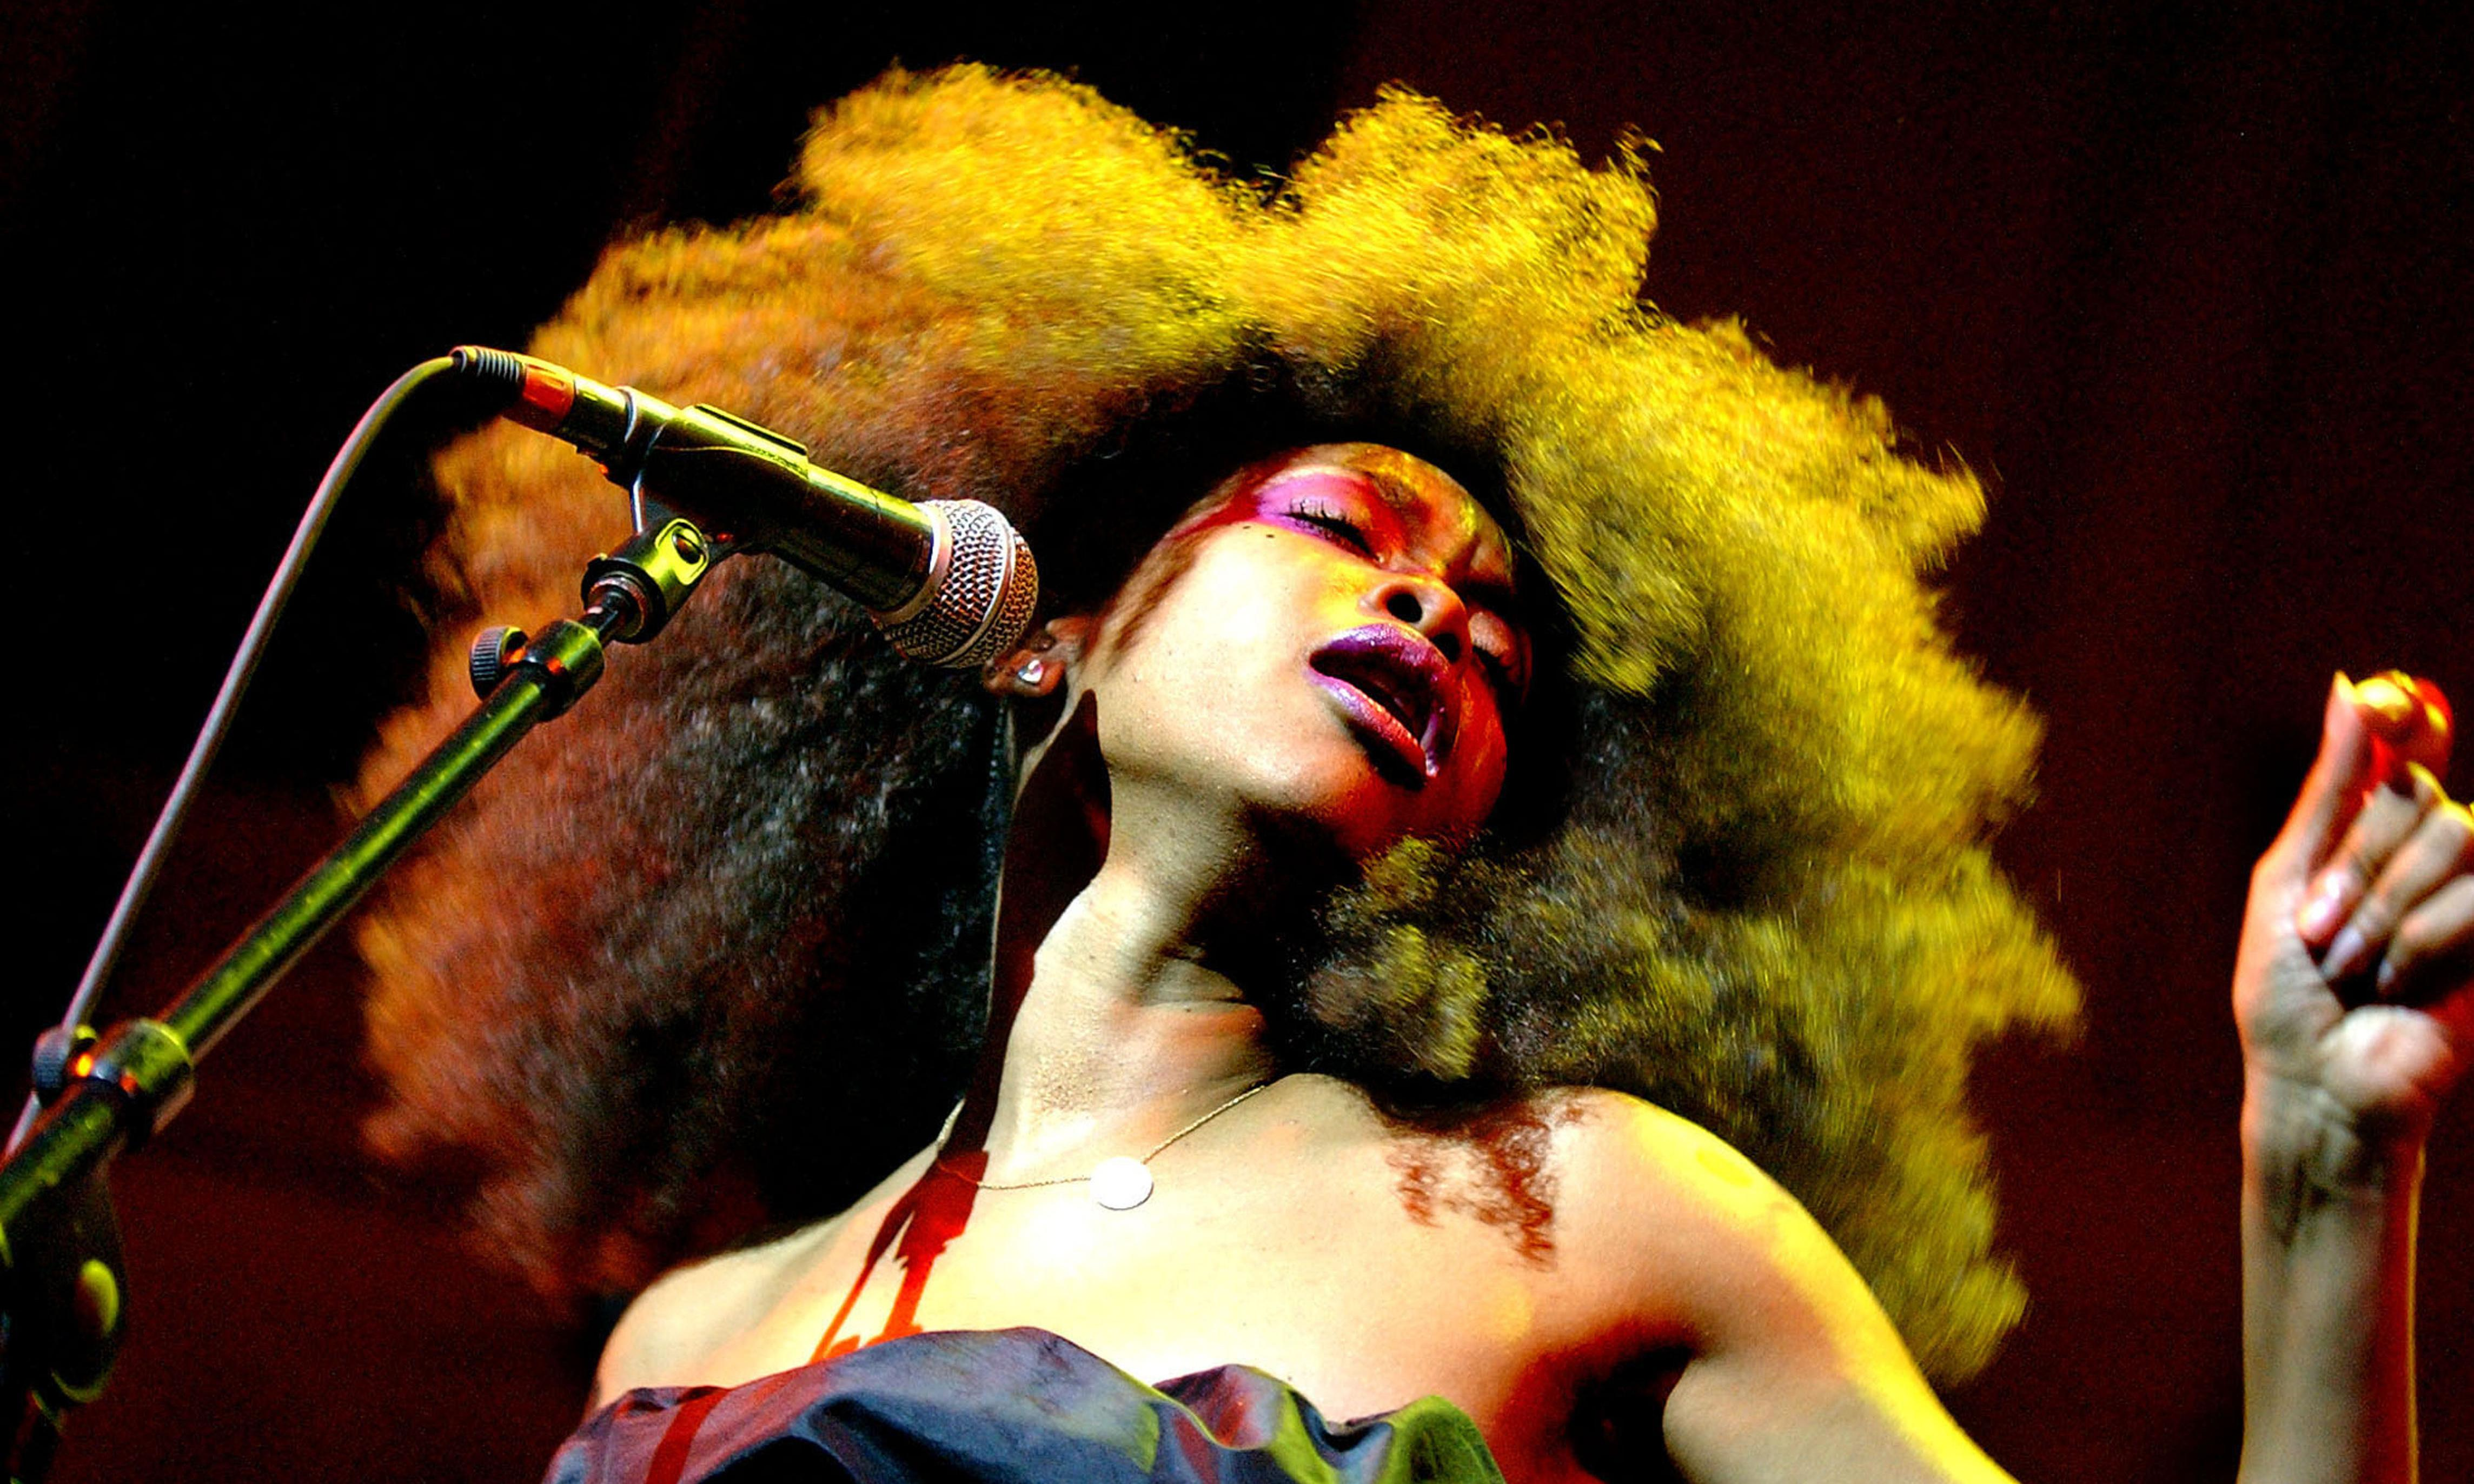 Erykah Badu is making vagina-scented incense. A perfumer explained it to us